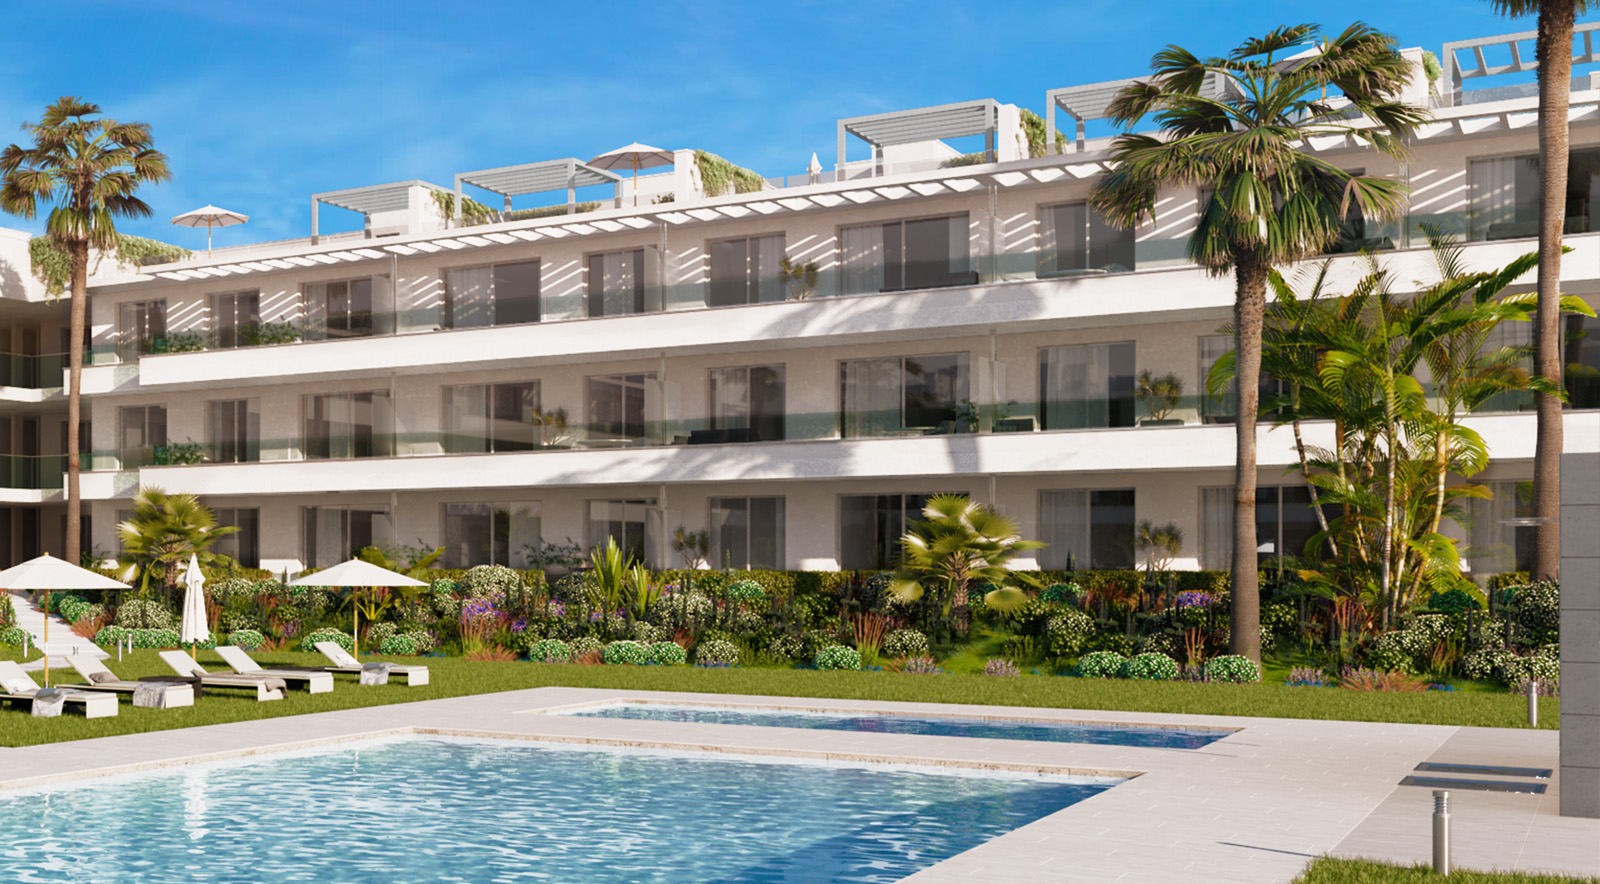 Apartment in Estepona MA7589994 5